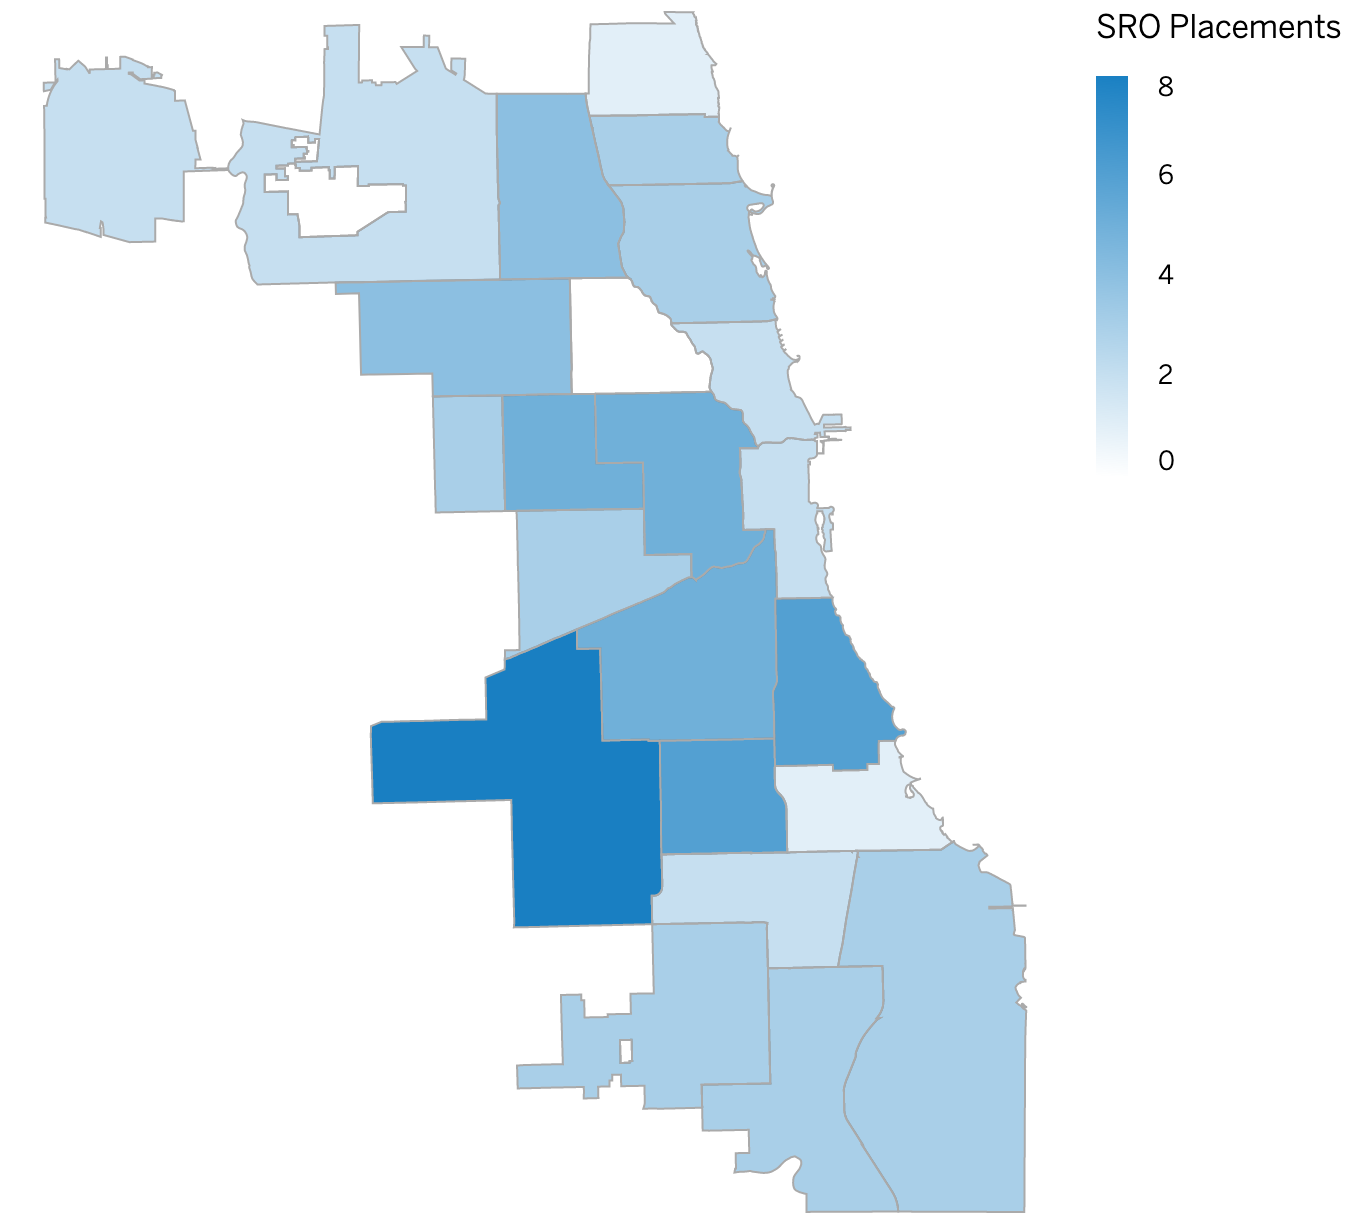 cpd-districts-sro.png